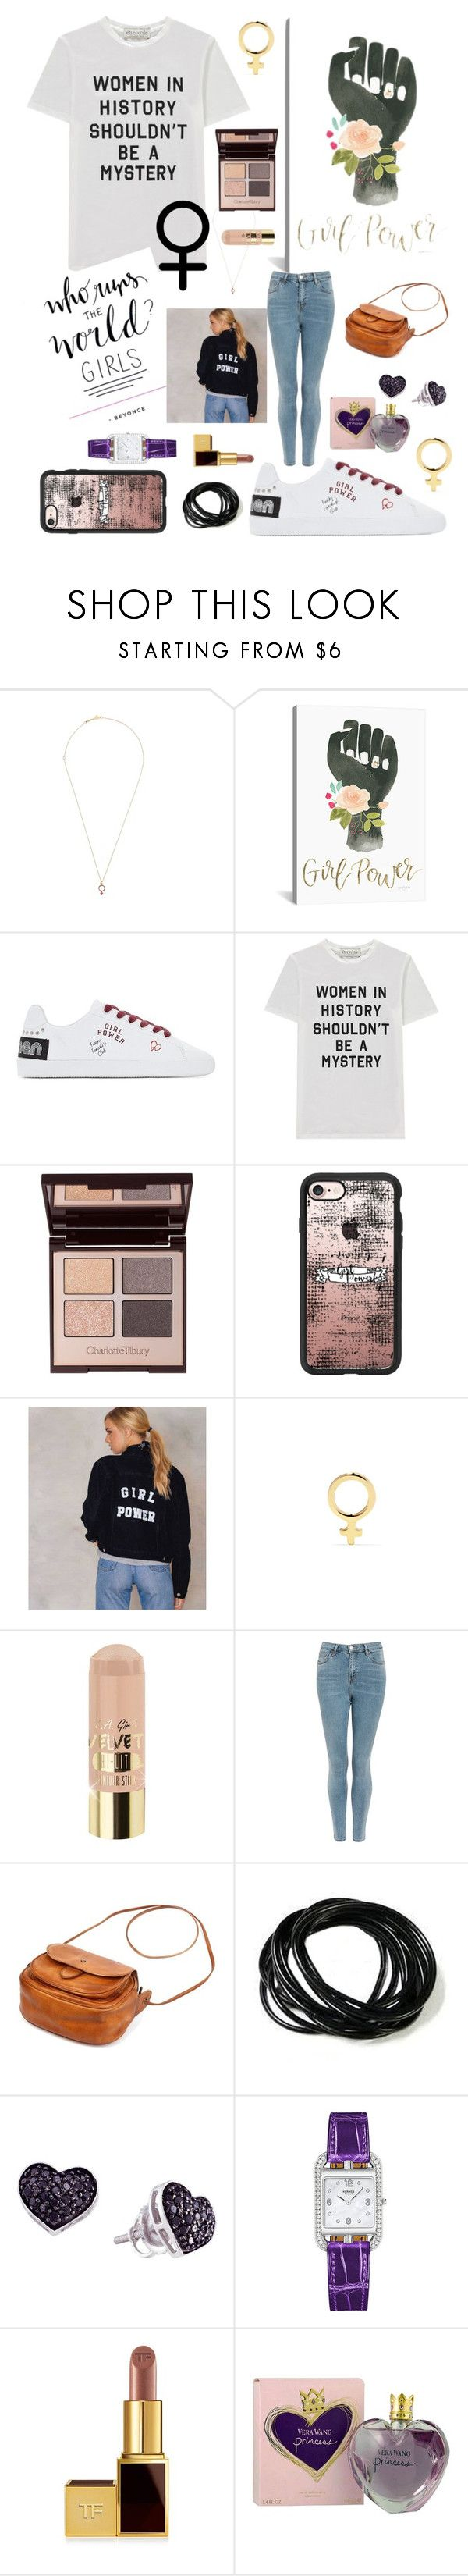 """""""Girl Power"""" by mwirls on Polyvore featuring Alison Lou, iCanvas, Être Cécile, Charlotte Tilbury, Casetify, L.A. Girl, Topshop, Hermès, Tom Ford and Vera Wang"""